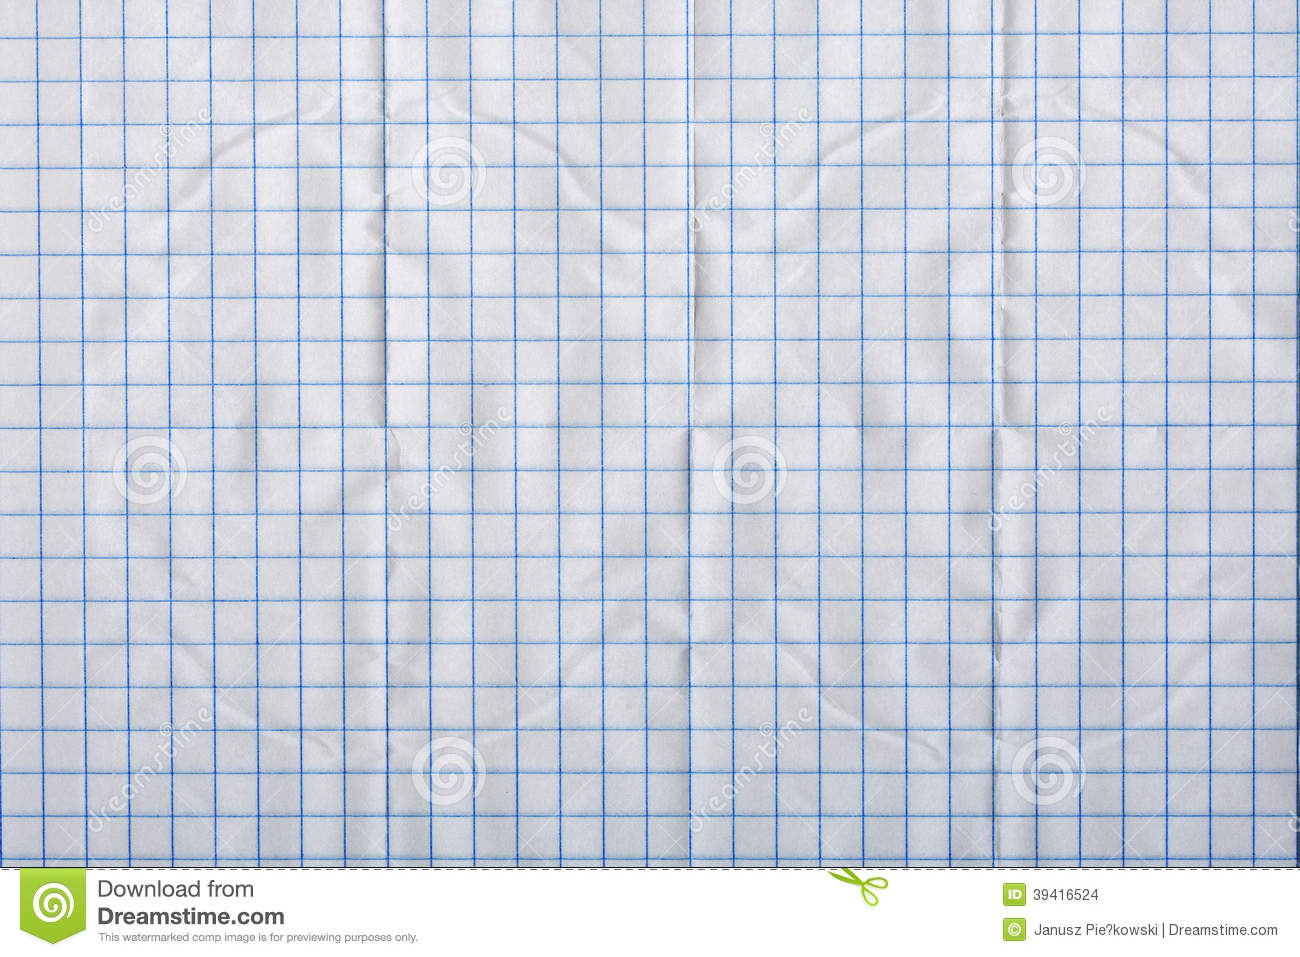 Crumpled blank math paper stock image. Image of study - 34664205